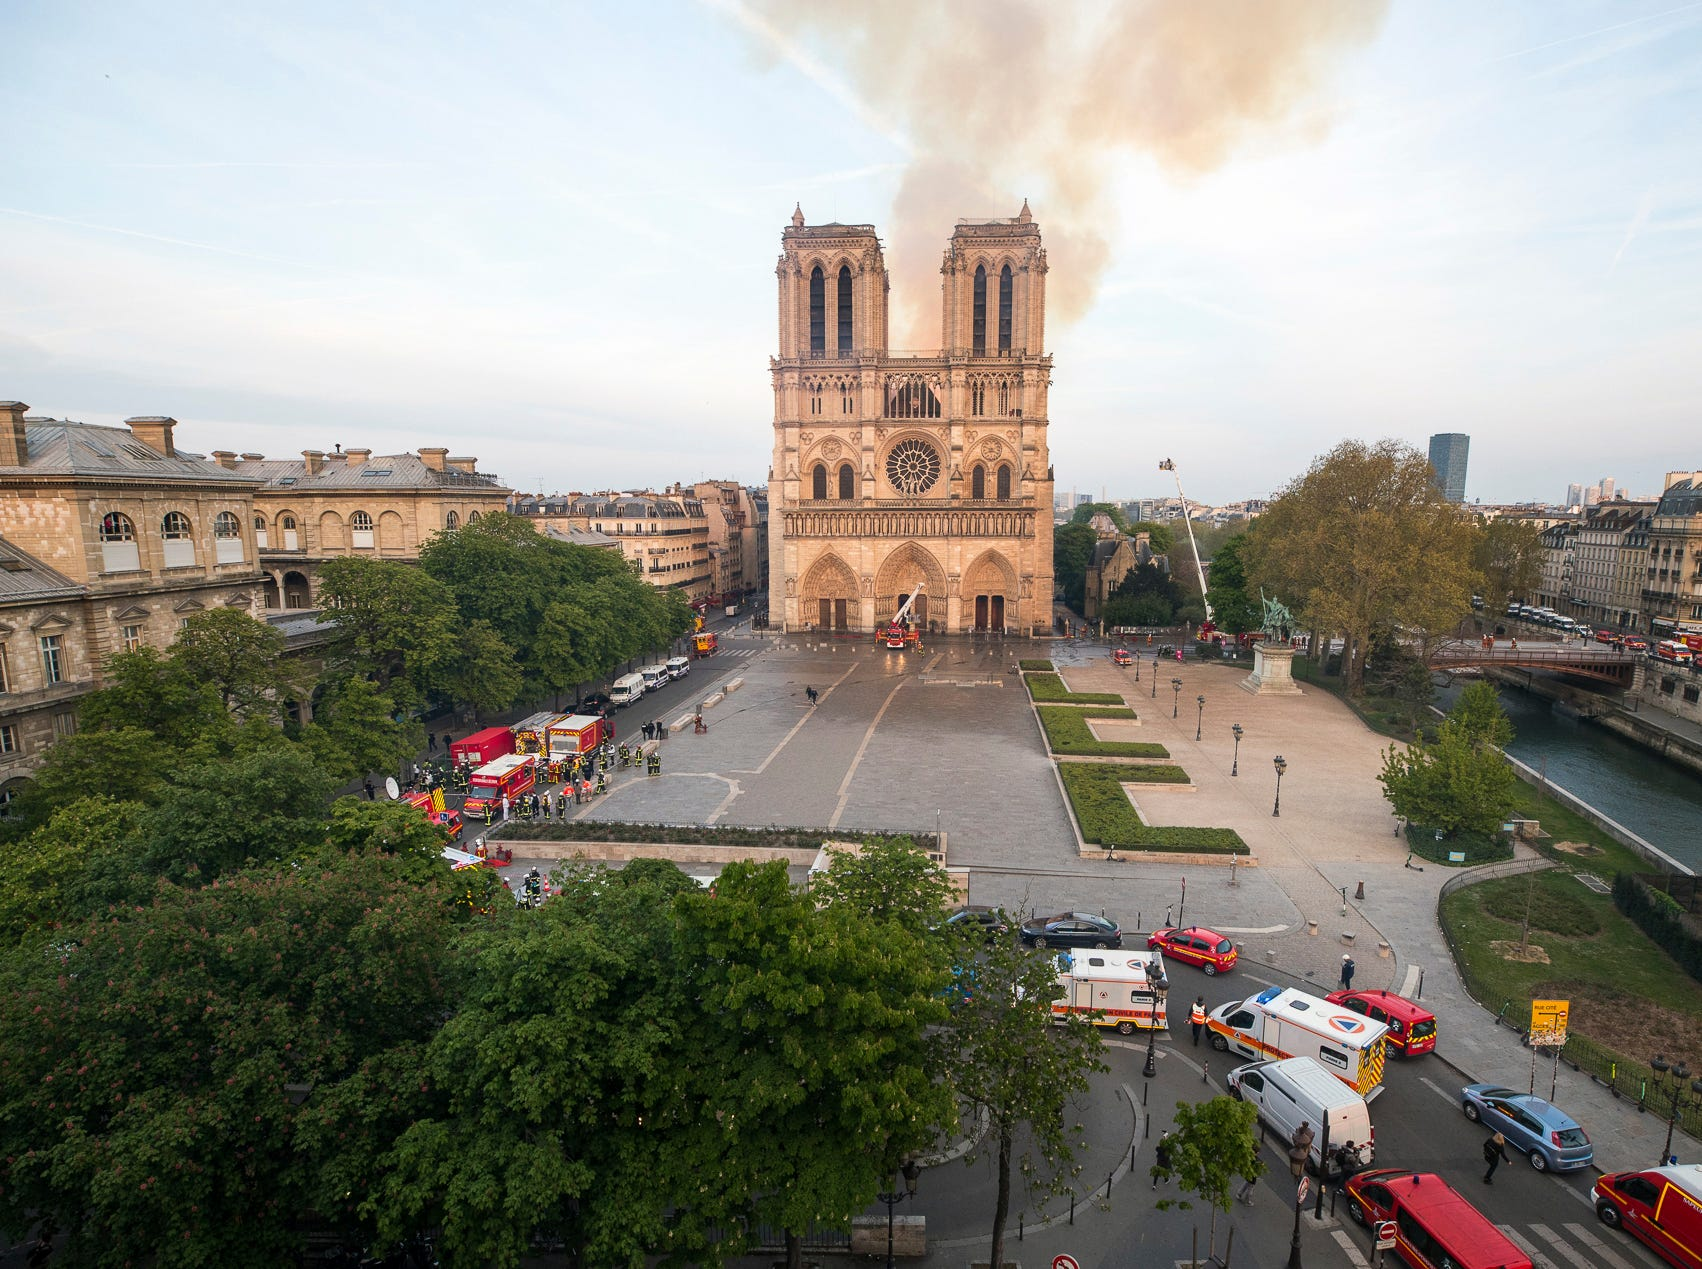 This photo provided Tuesday April 16, 2019 by the Paris Fire Brigade shows fire fighters working at the burning Notre Dame cathedral, Monday April 15, 2019. Experts assessed the blackened shell of Paris' iconic Notre Dame Tuesday morning to establish next steps to save what remains after a devastating fire destroyed much of the cathedral that had survived almost 900 years of history.